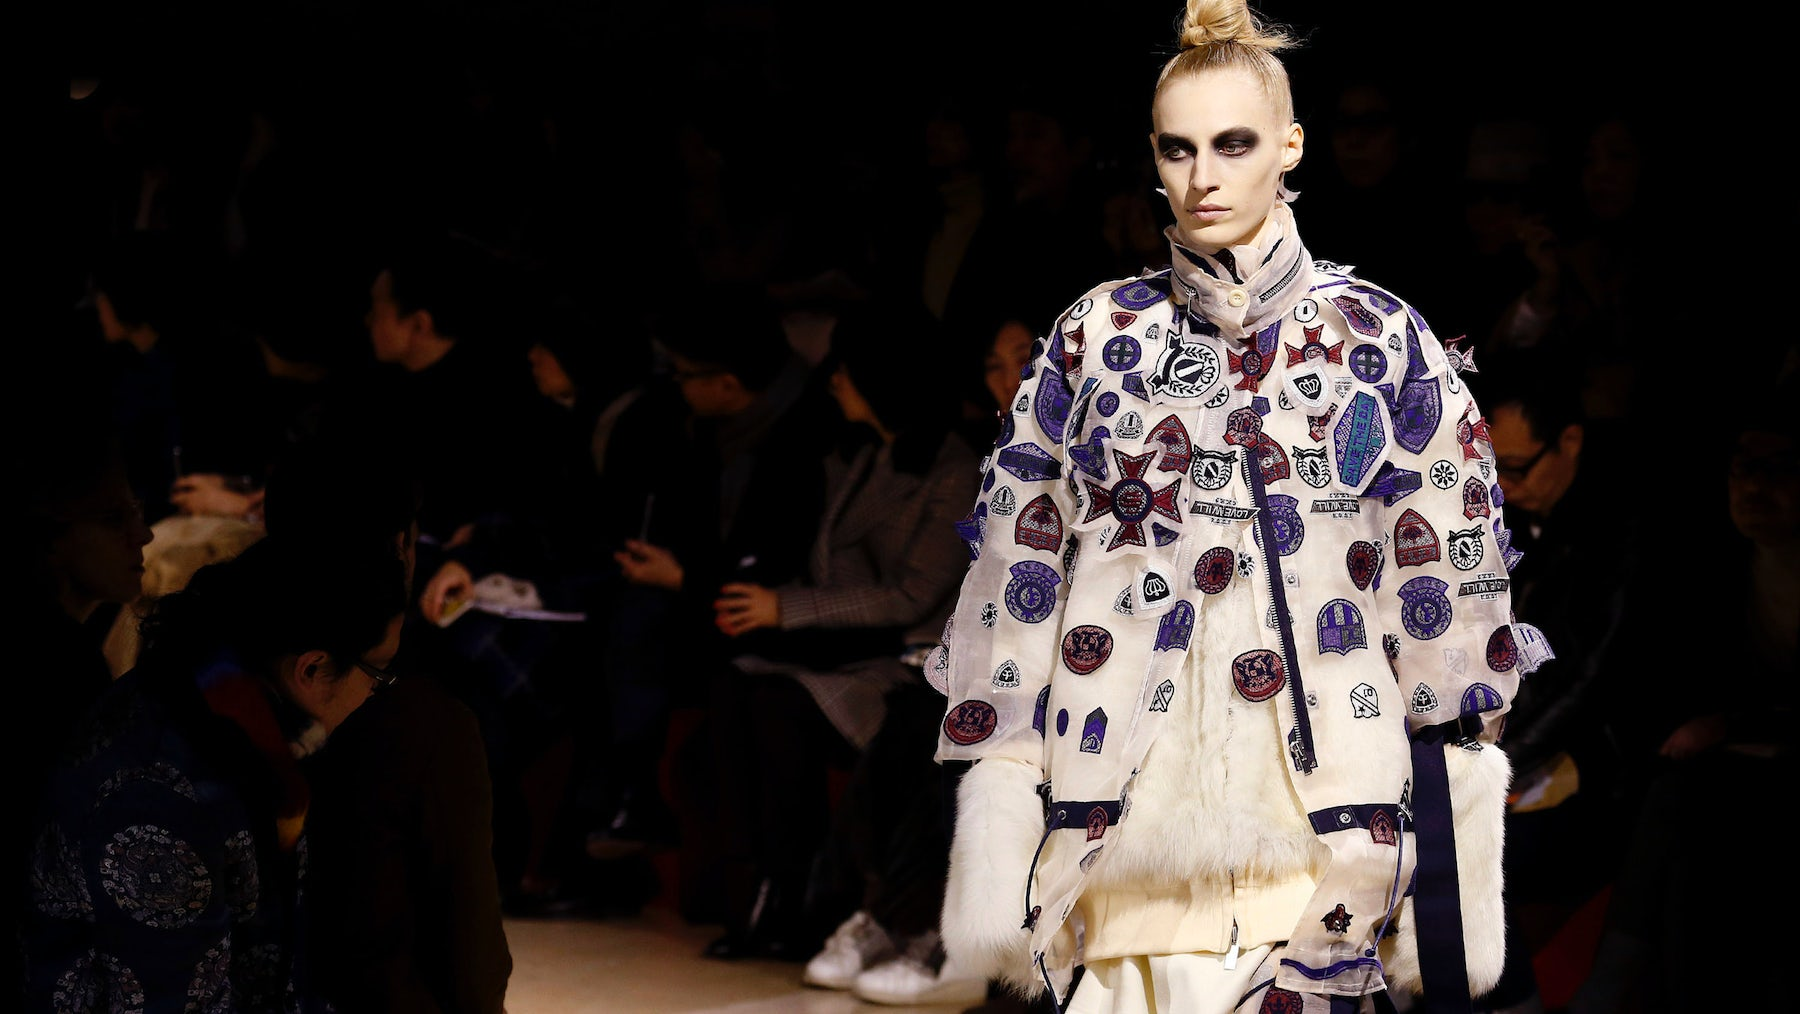 Homegrown Asian Labels Challenge Western Imports Global Currents International News Analysis Bof